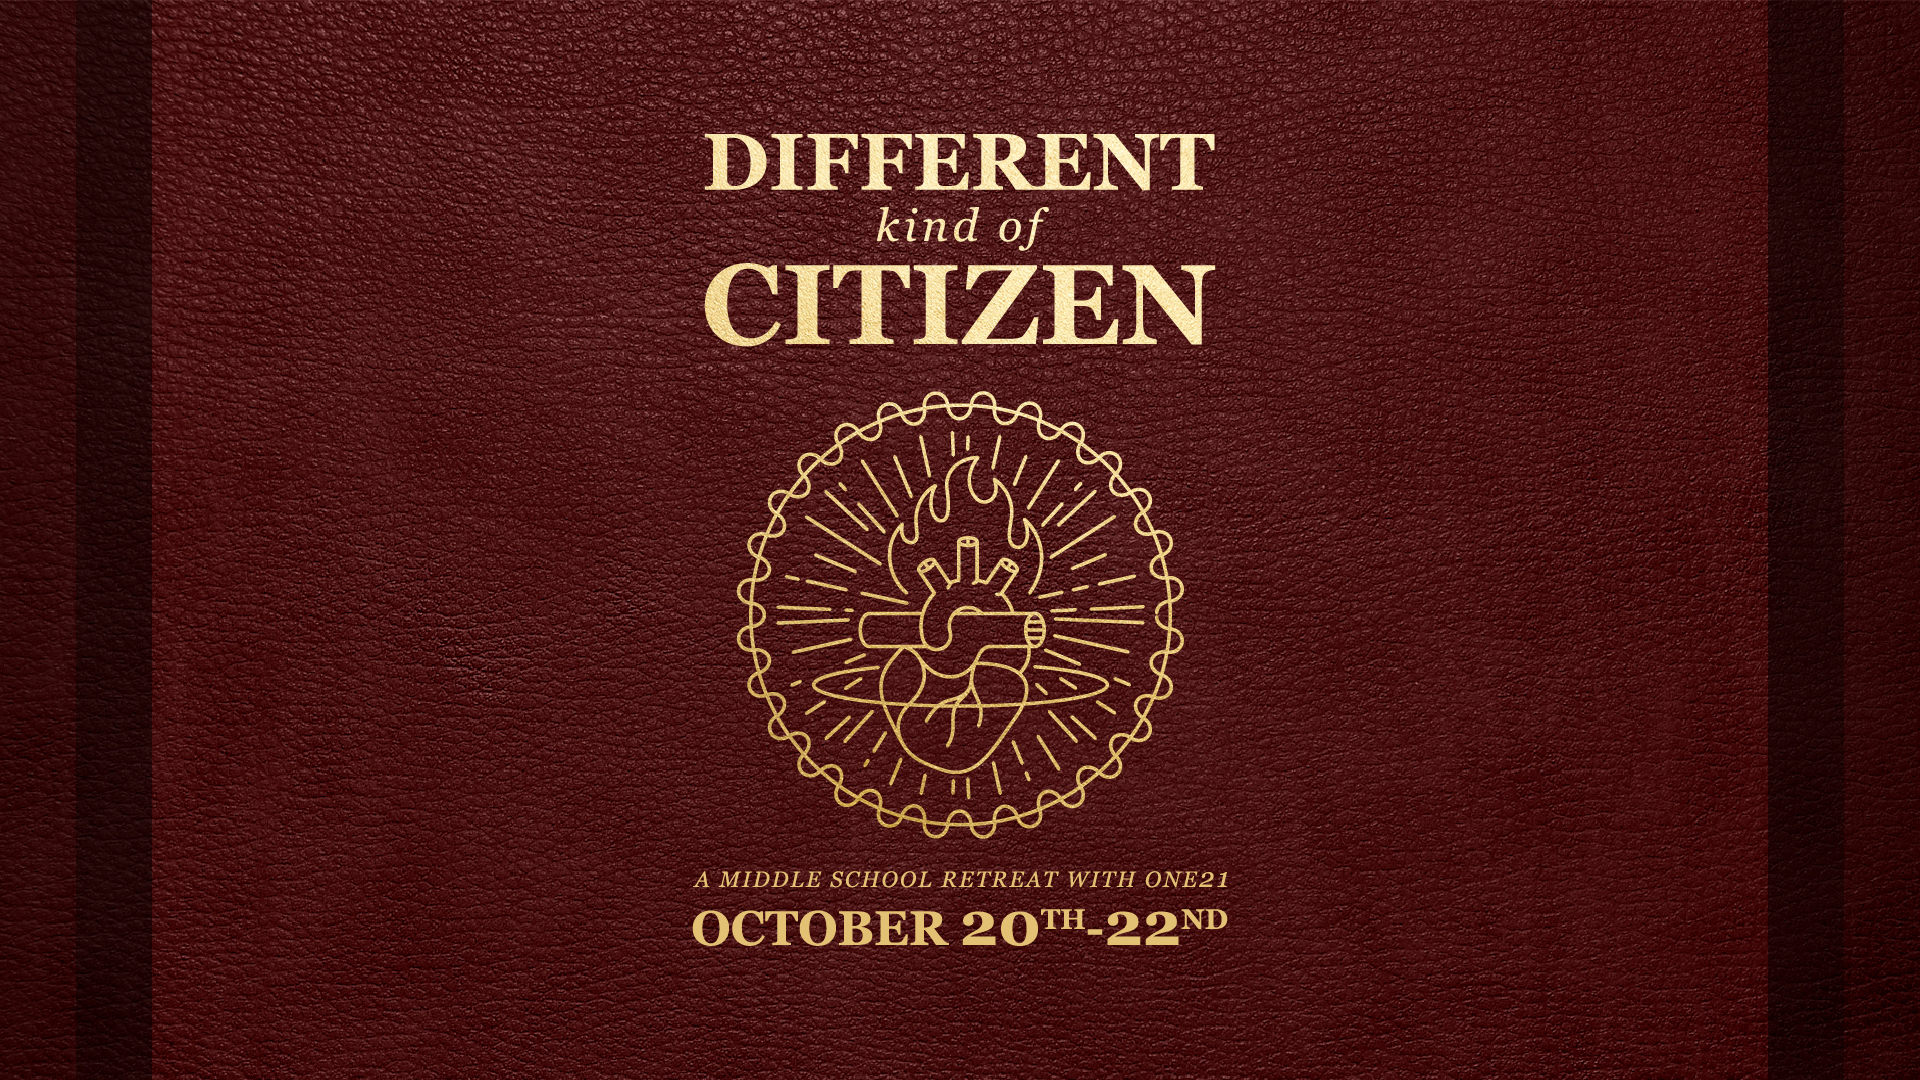 One21 different citizen 16 9 01  1